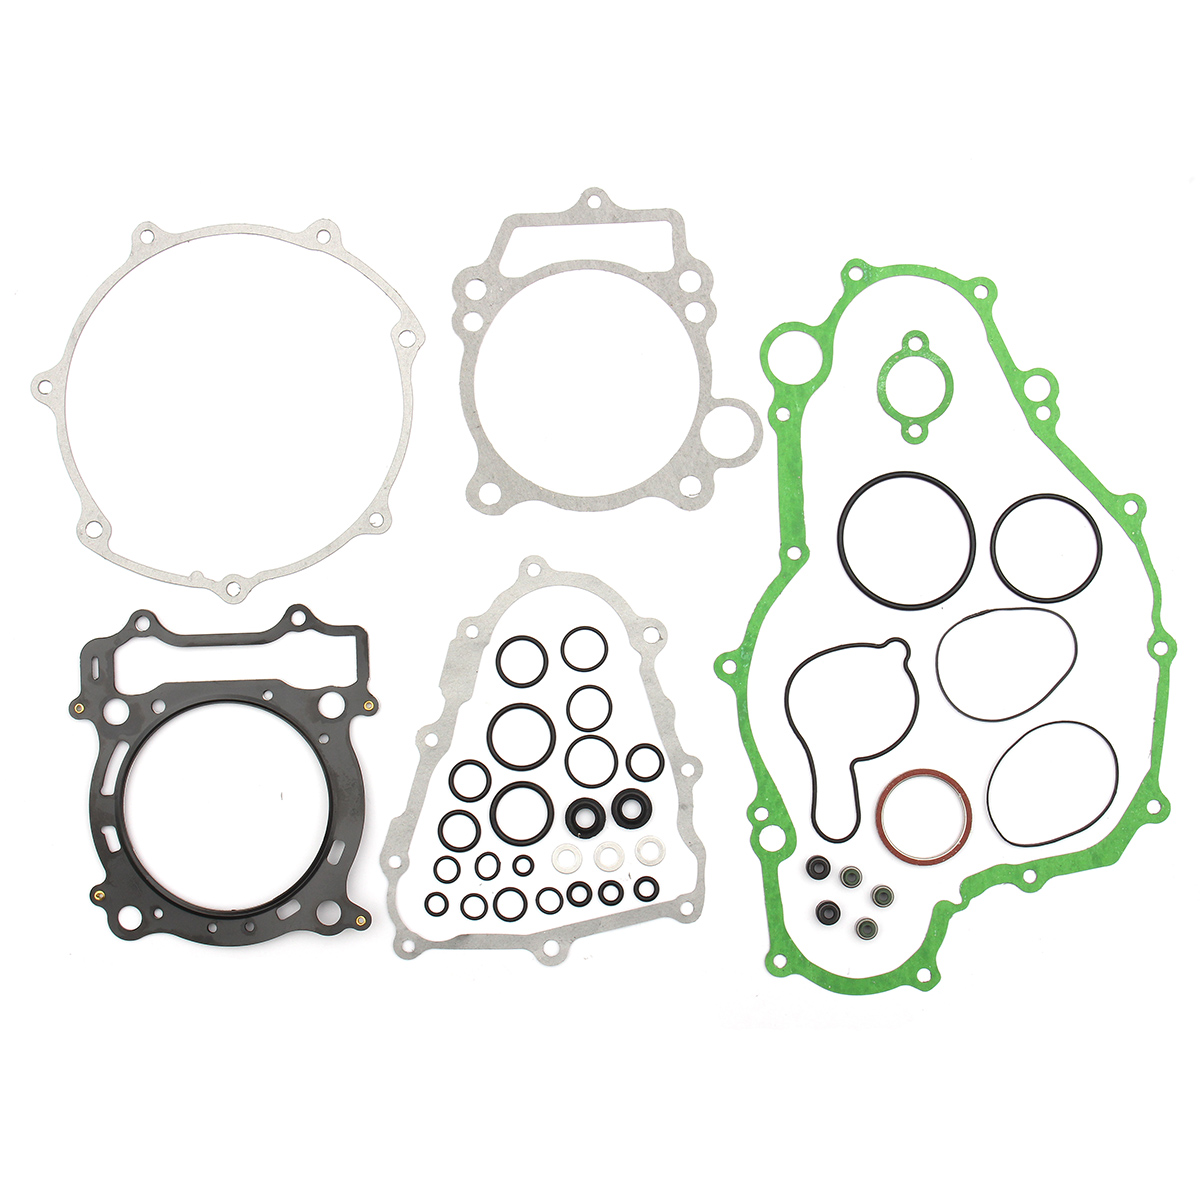 motorcycle engine gaskets o-ring kit set for yamaha yfz450